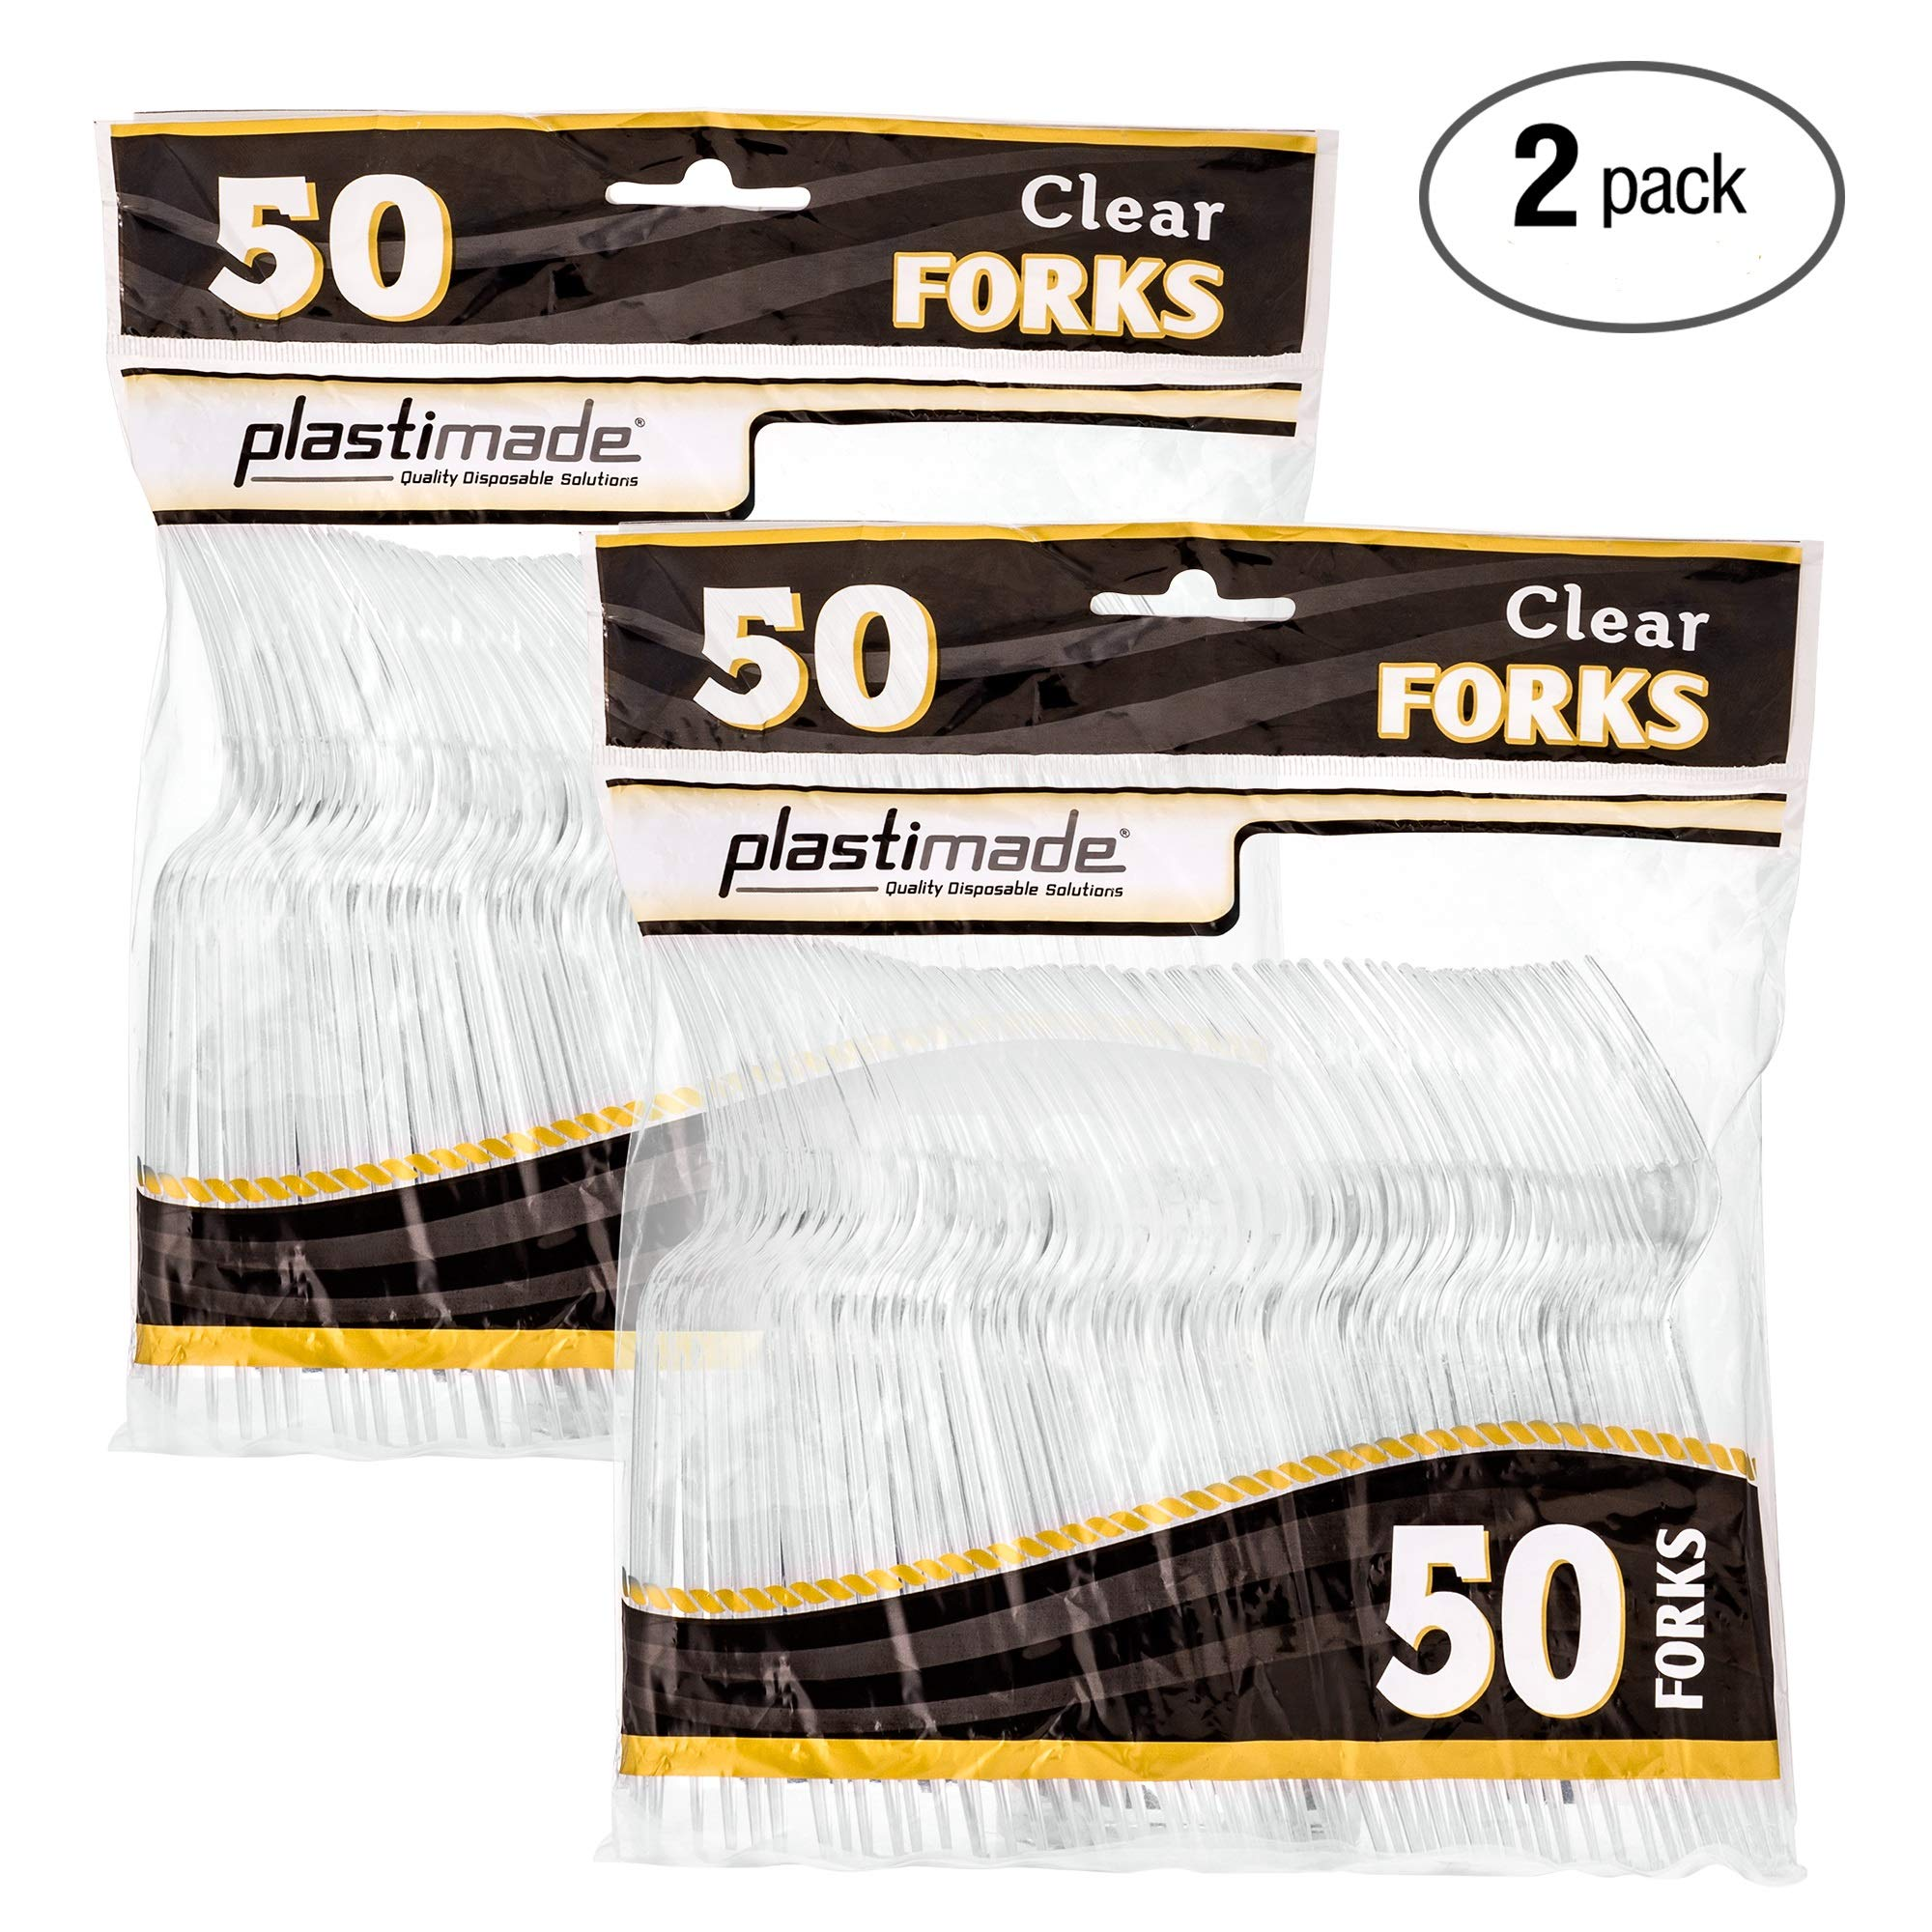 [100 Clear Forks] Plastimade Disposable Heavy Duty Plastic Cutlery,Great for Every Day Use, Home, Office, Party, Picnics, or Outdoor Events, by Plastimade